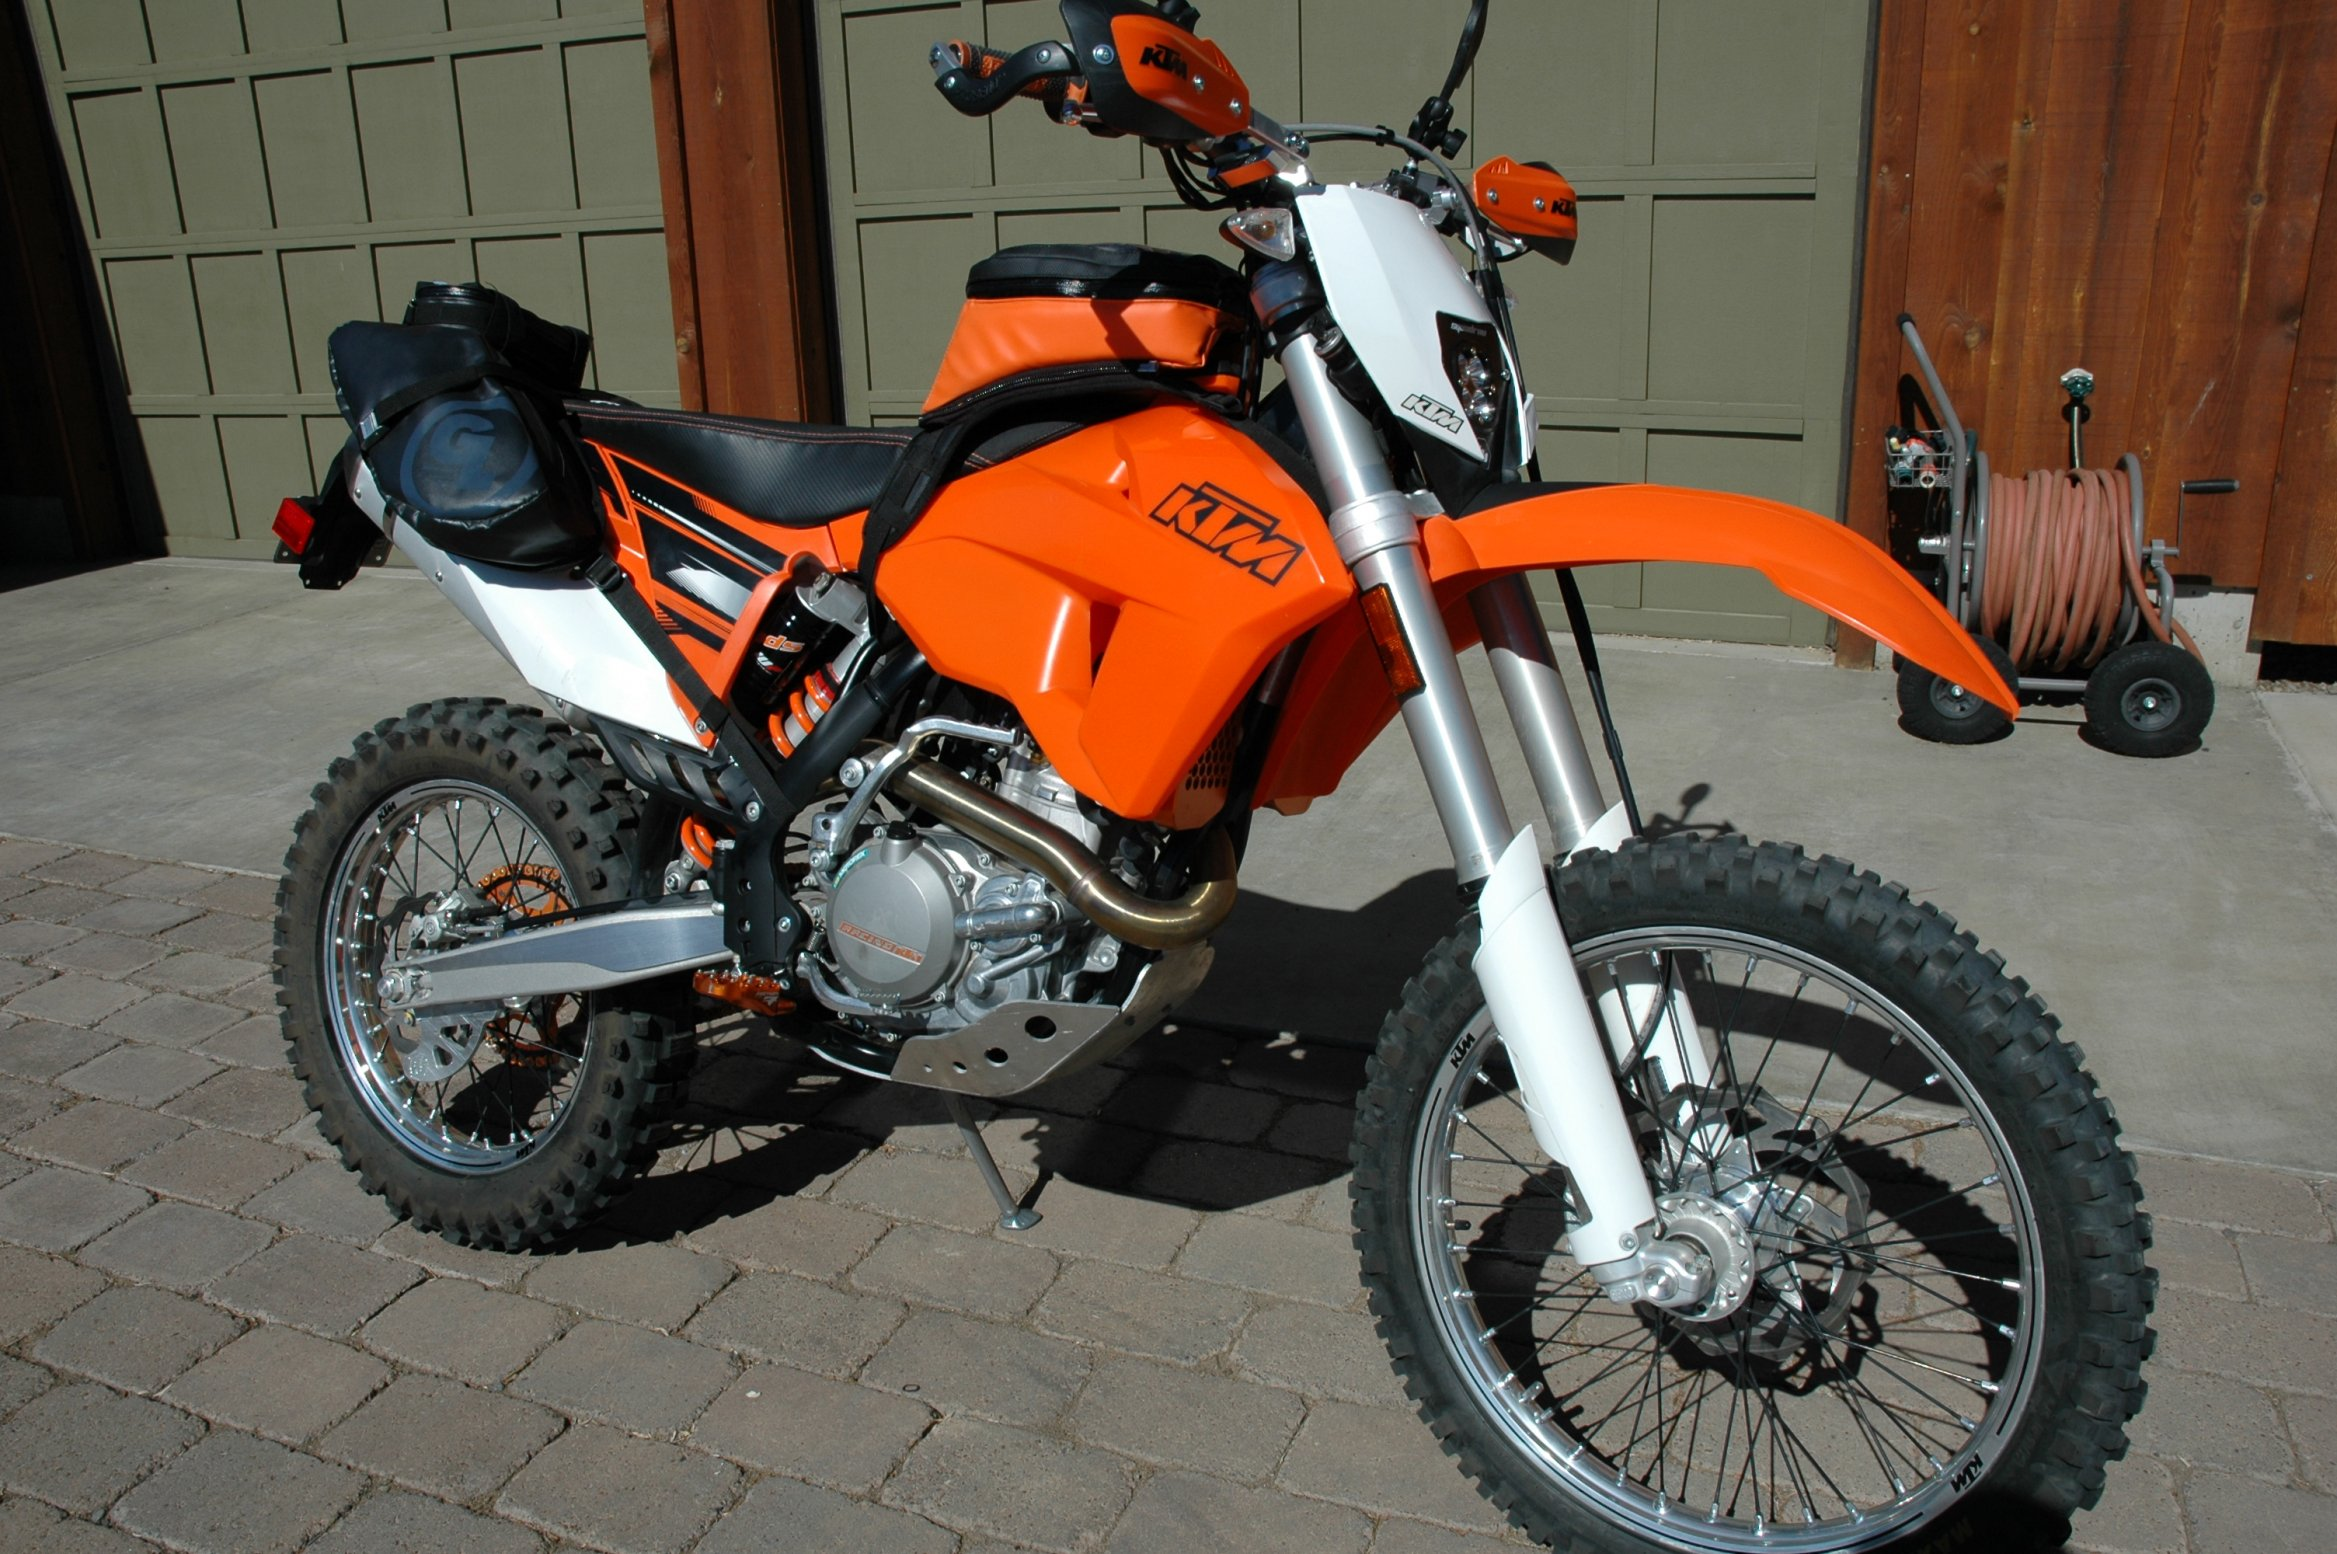 2013 KTM 500 EXC 11 hours / 249 miles SOLD | Expedition Portal